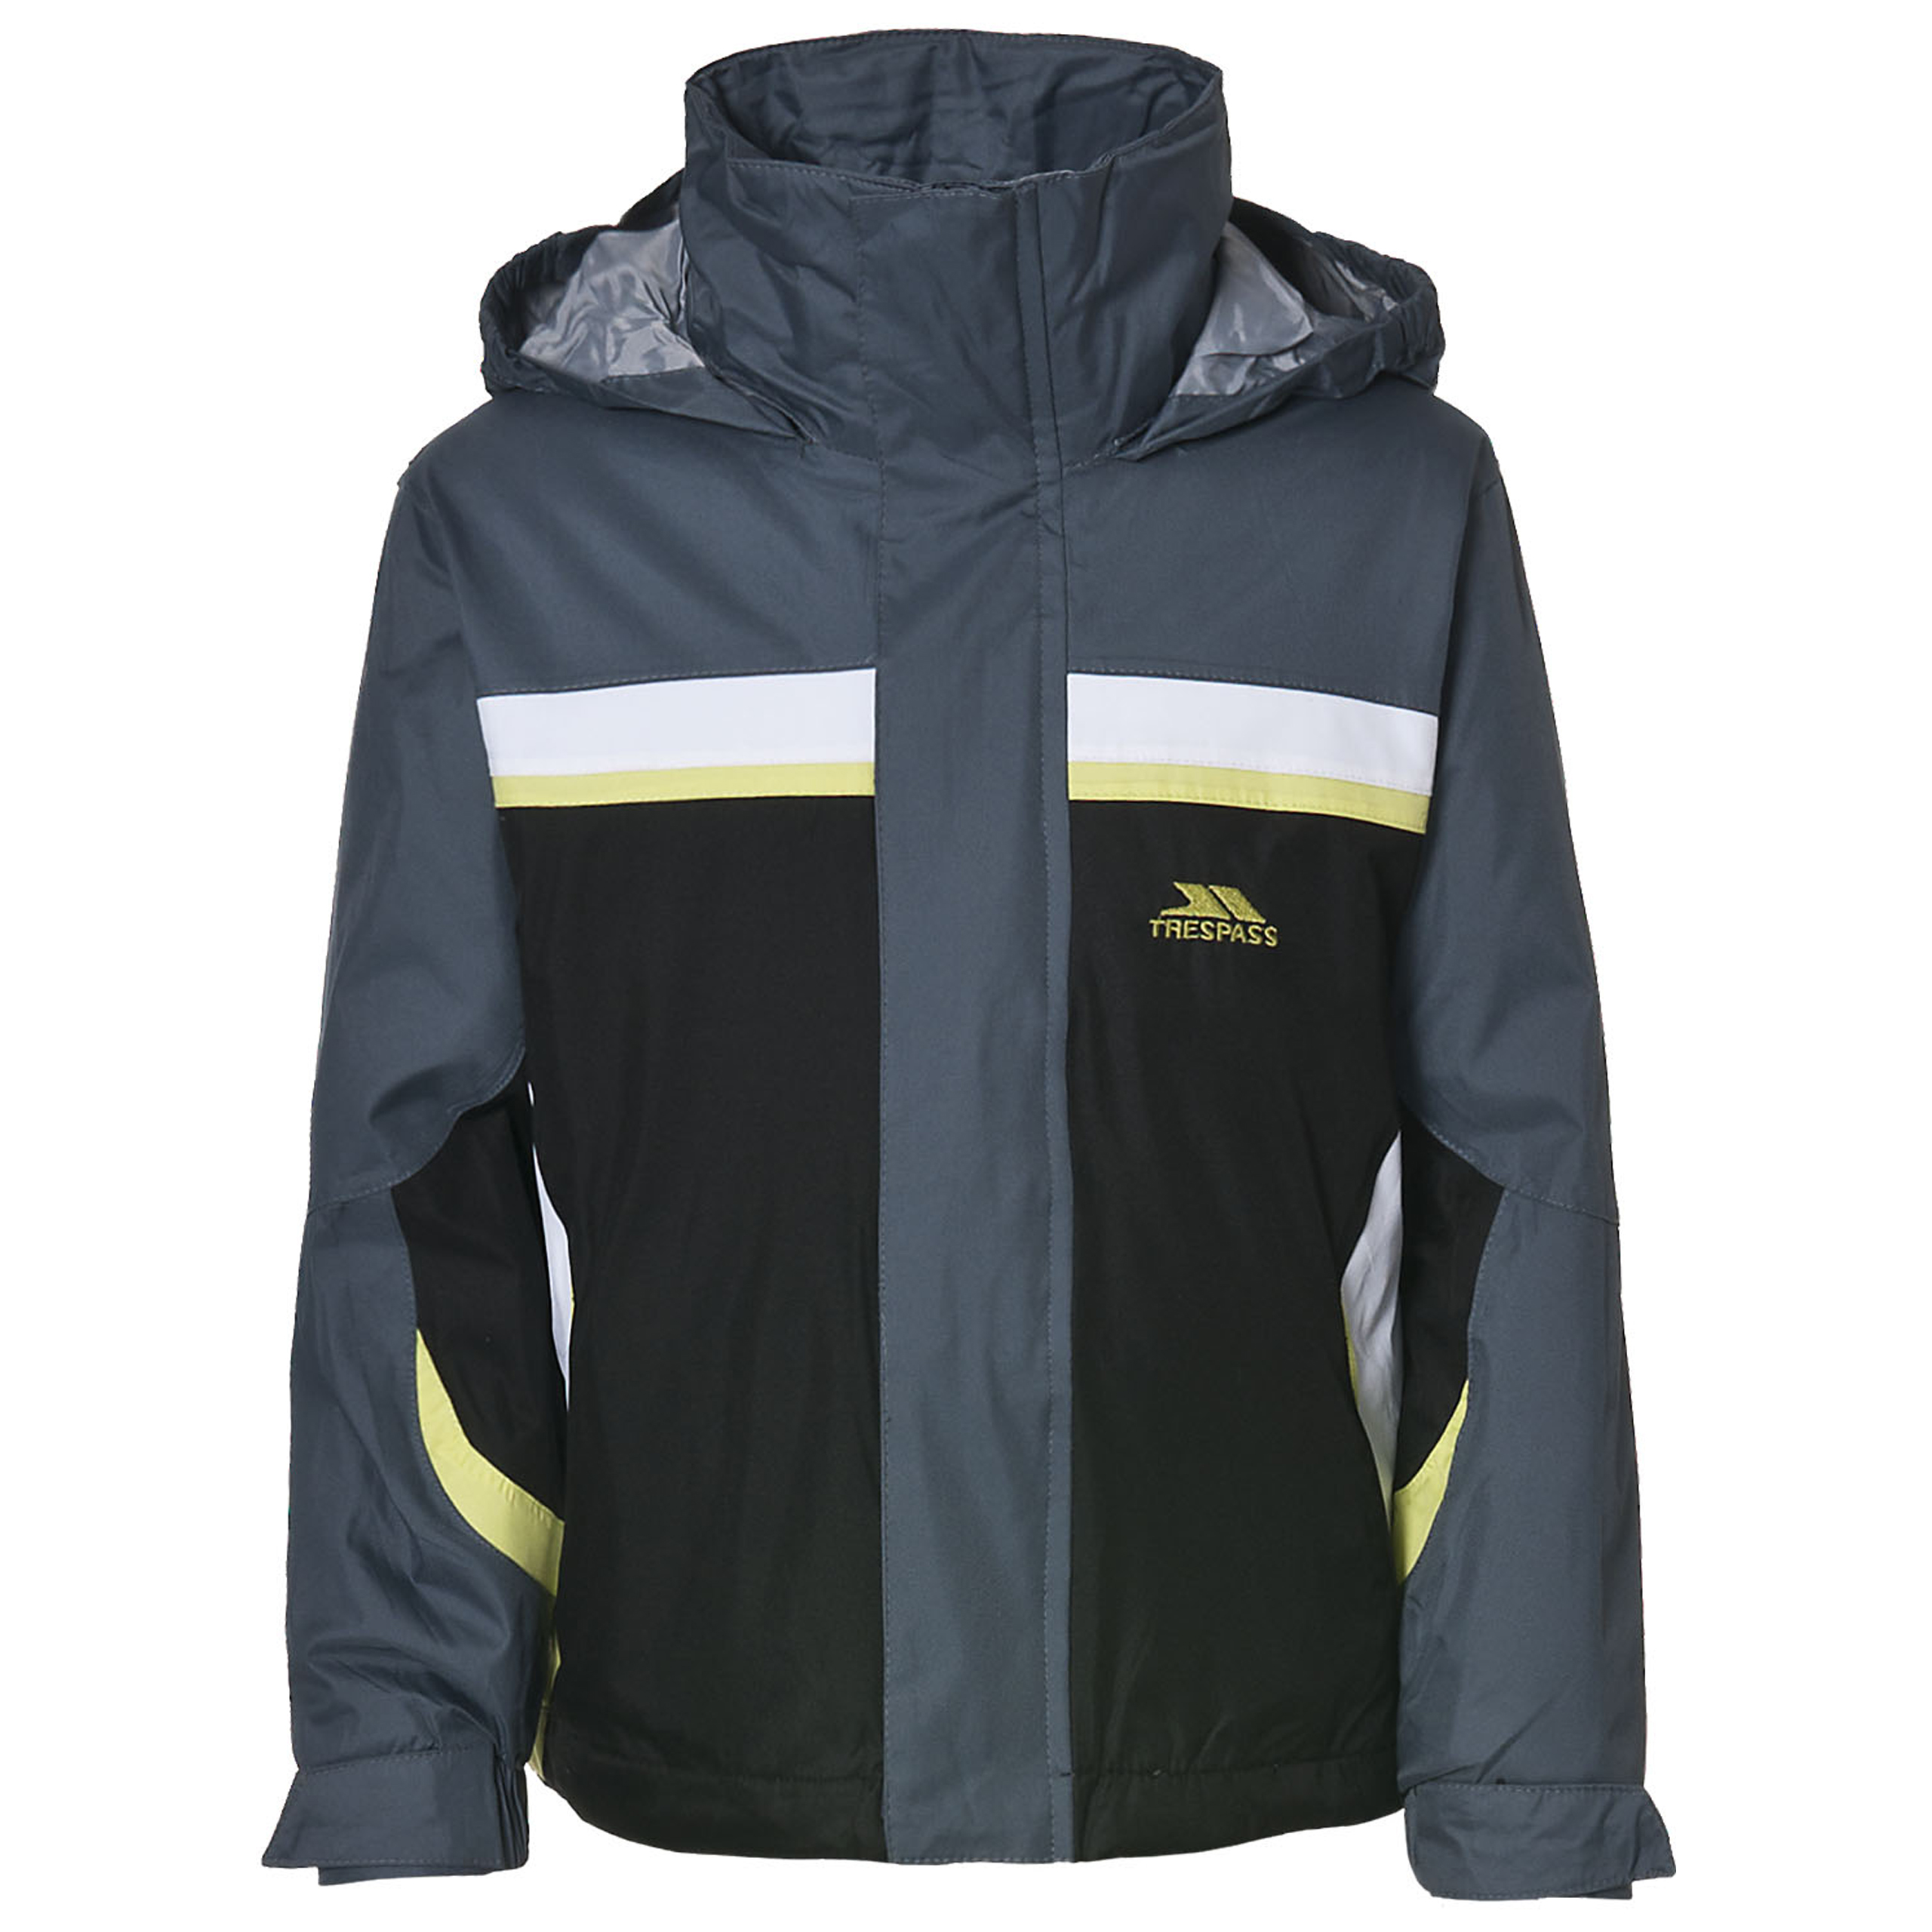 Find great deals on eBay for boys waterproof jacket size Shop with confidence.